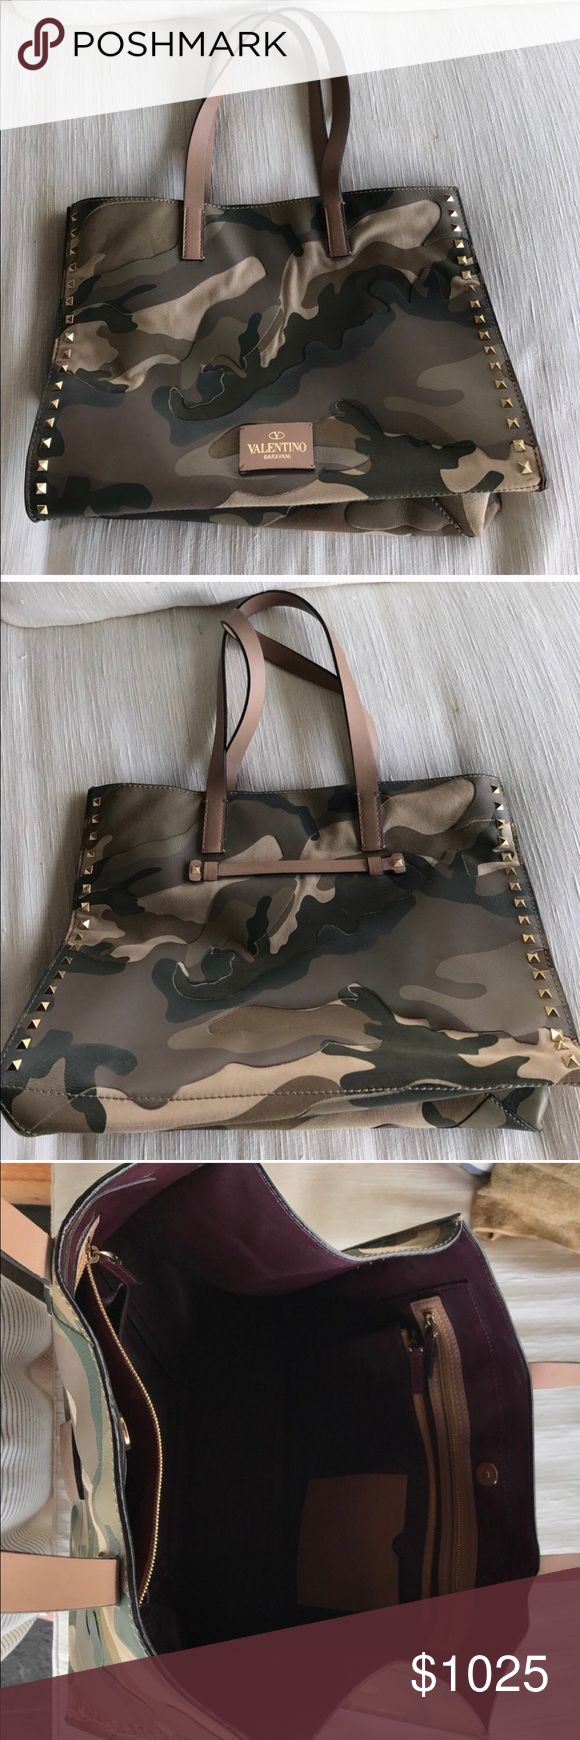 """Valentino Camo Tote. Rare find!! On Sale!! ~SOLD~  Valentino Camouflage tote bag. If you have been looking for one of these you know how hard they are to find for sale.   Great condition and the leather shows no cracks or wear marks.  Leather and canvas with gold tone studs Magnetic snap closure I have had numerous compliments.  Retail price: $2495 W 15"""", H 11"""", D 7. Valentino Garavani Bags Totes"""